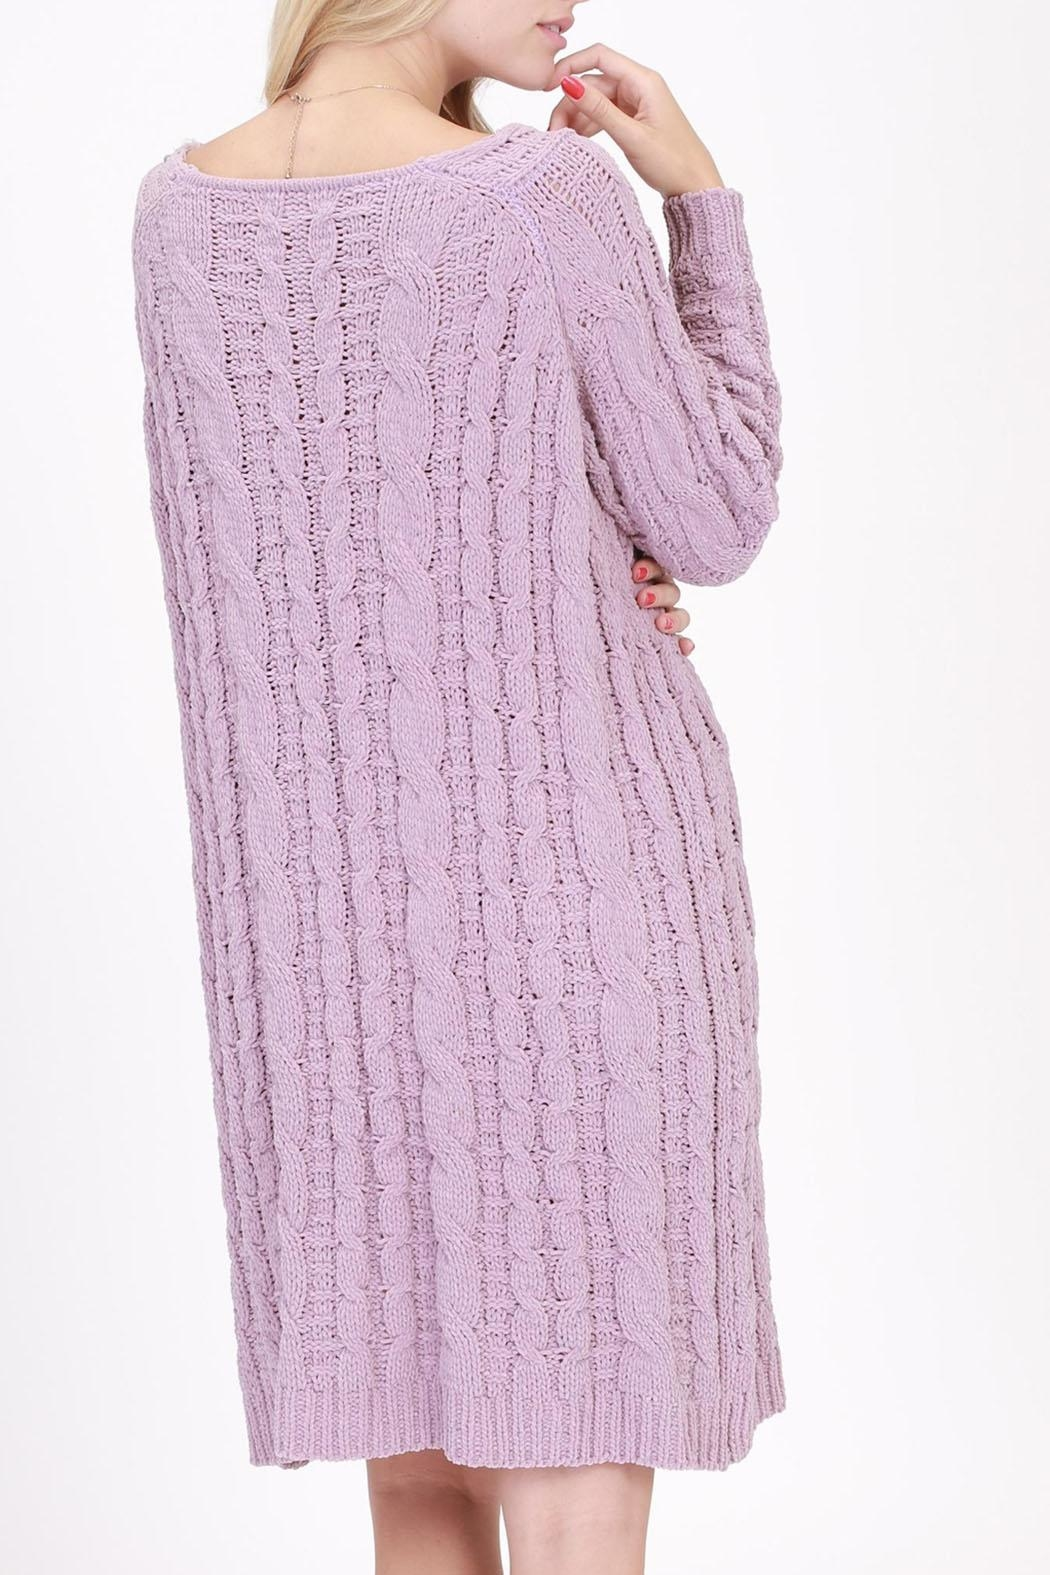 HYFVE Cable Knit Sweater Dress from New Jersey by Making Waves ...